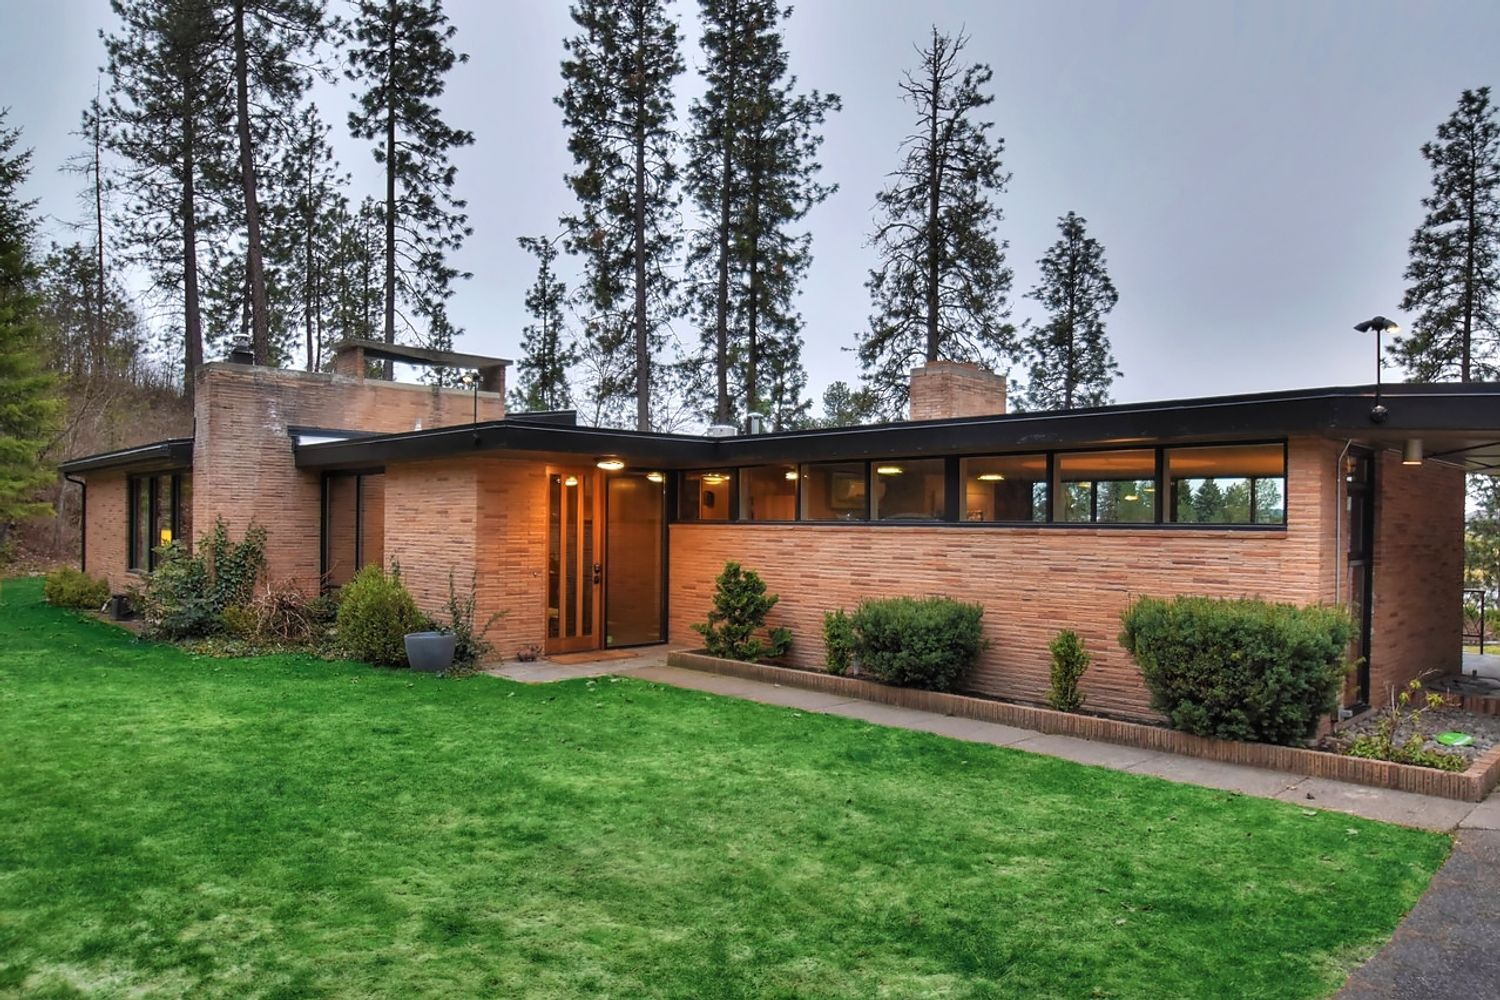 Tour A Dreamy Waterfront Midcentury Modern Home Home